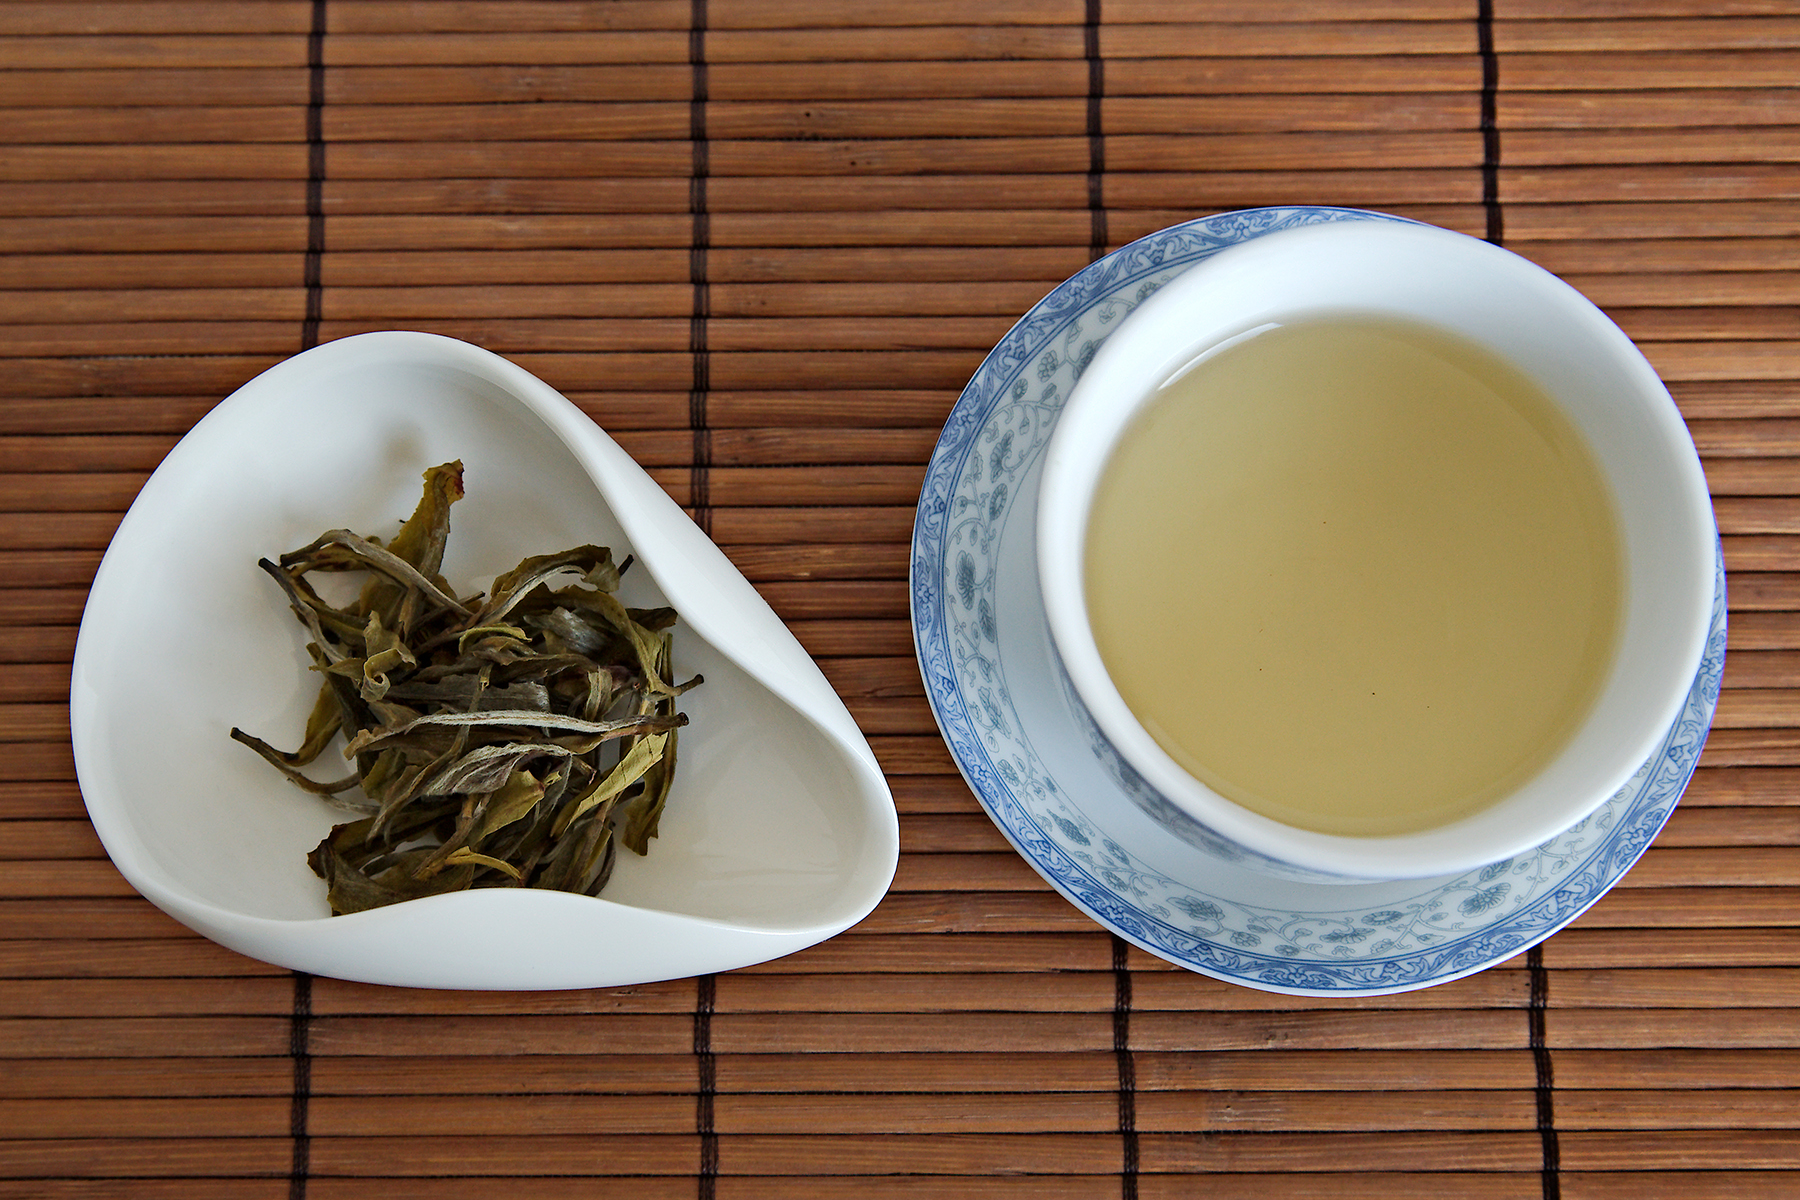 Tea Review: Avaata Supreme Nilgiri Green Tea - Golden Tips